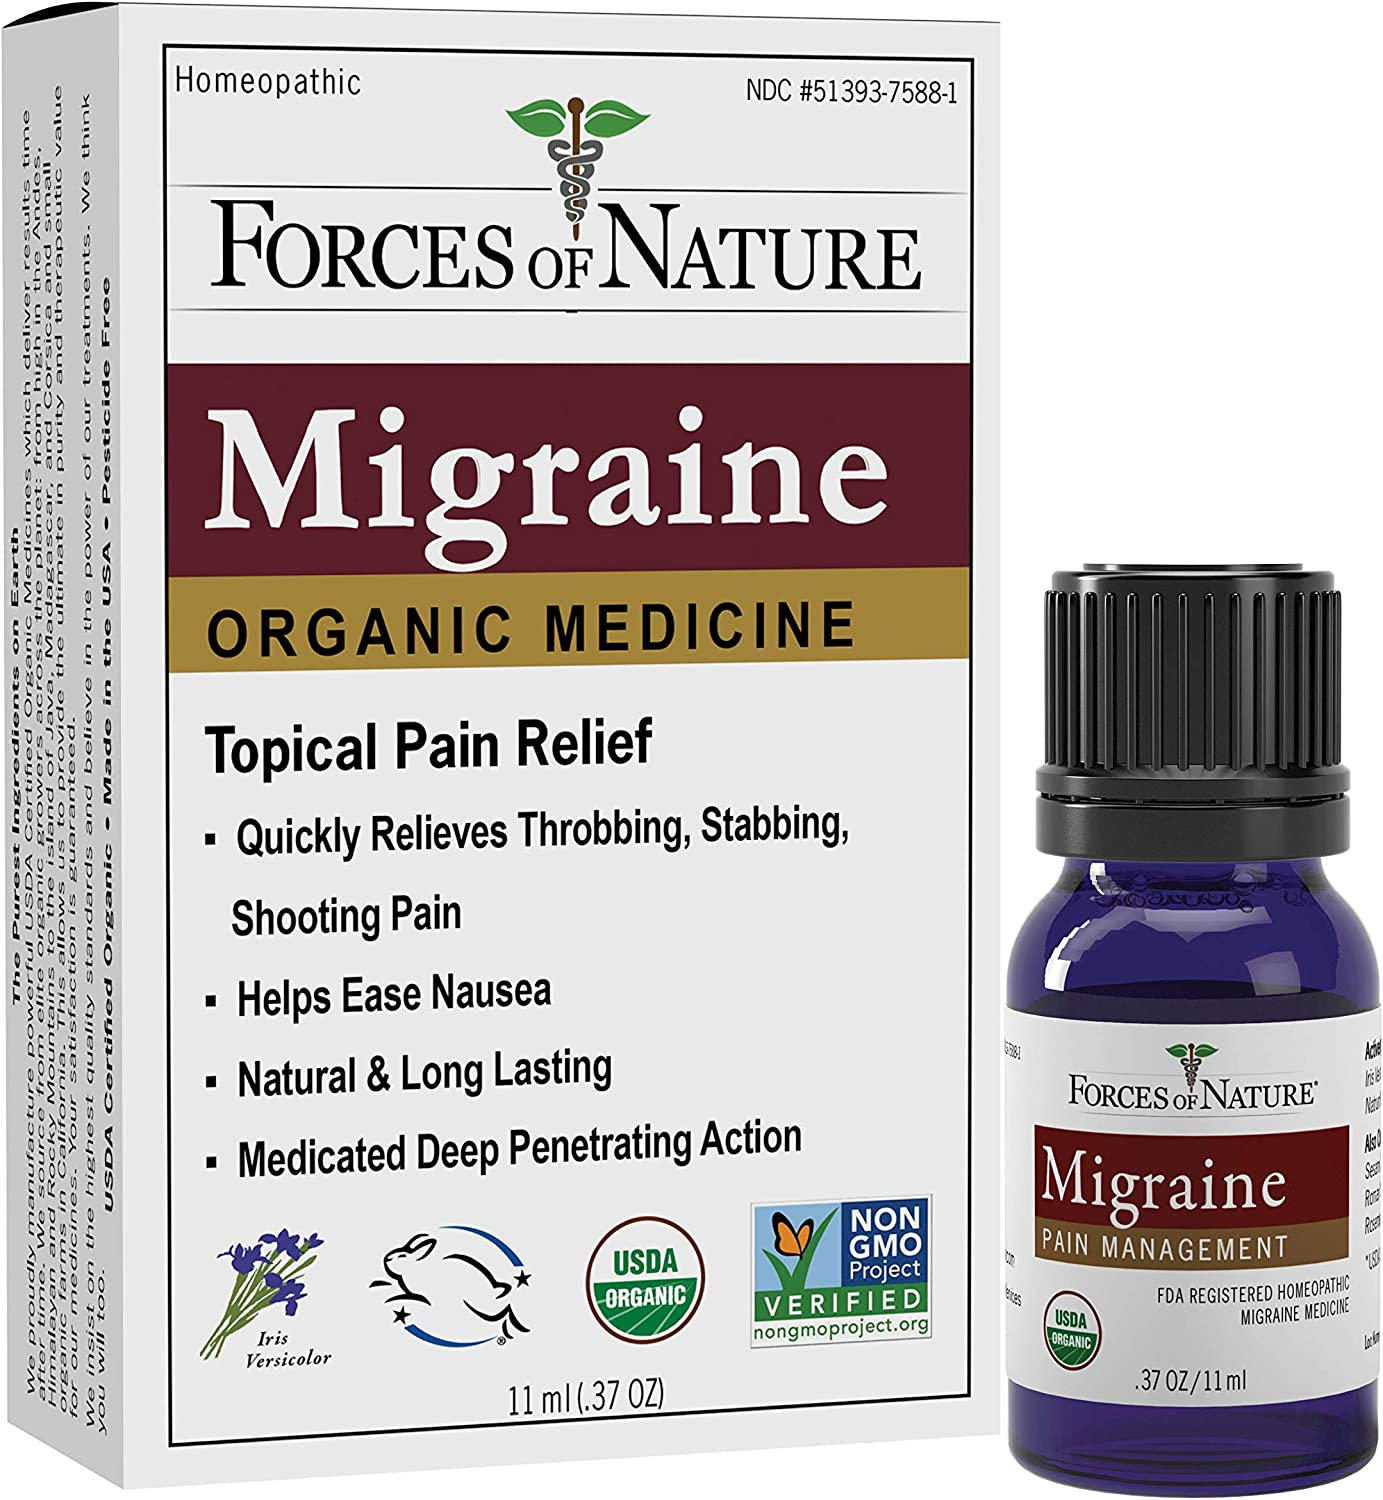 Forces of Nature -Natural, Organic Migraine Pain Relief (11ml) Non GMO, No Harmful Chemicals -Alleviate Prodrome, Aura, Headache, Fatigue, Light and Sound Sensitivity, Nausea Associated with Migraines